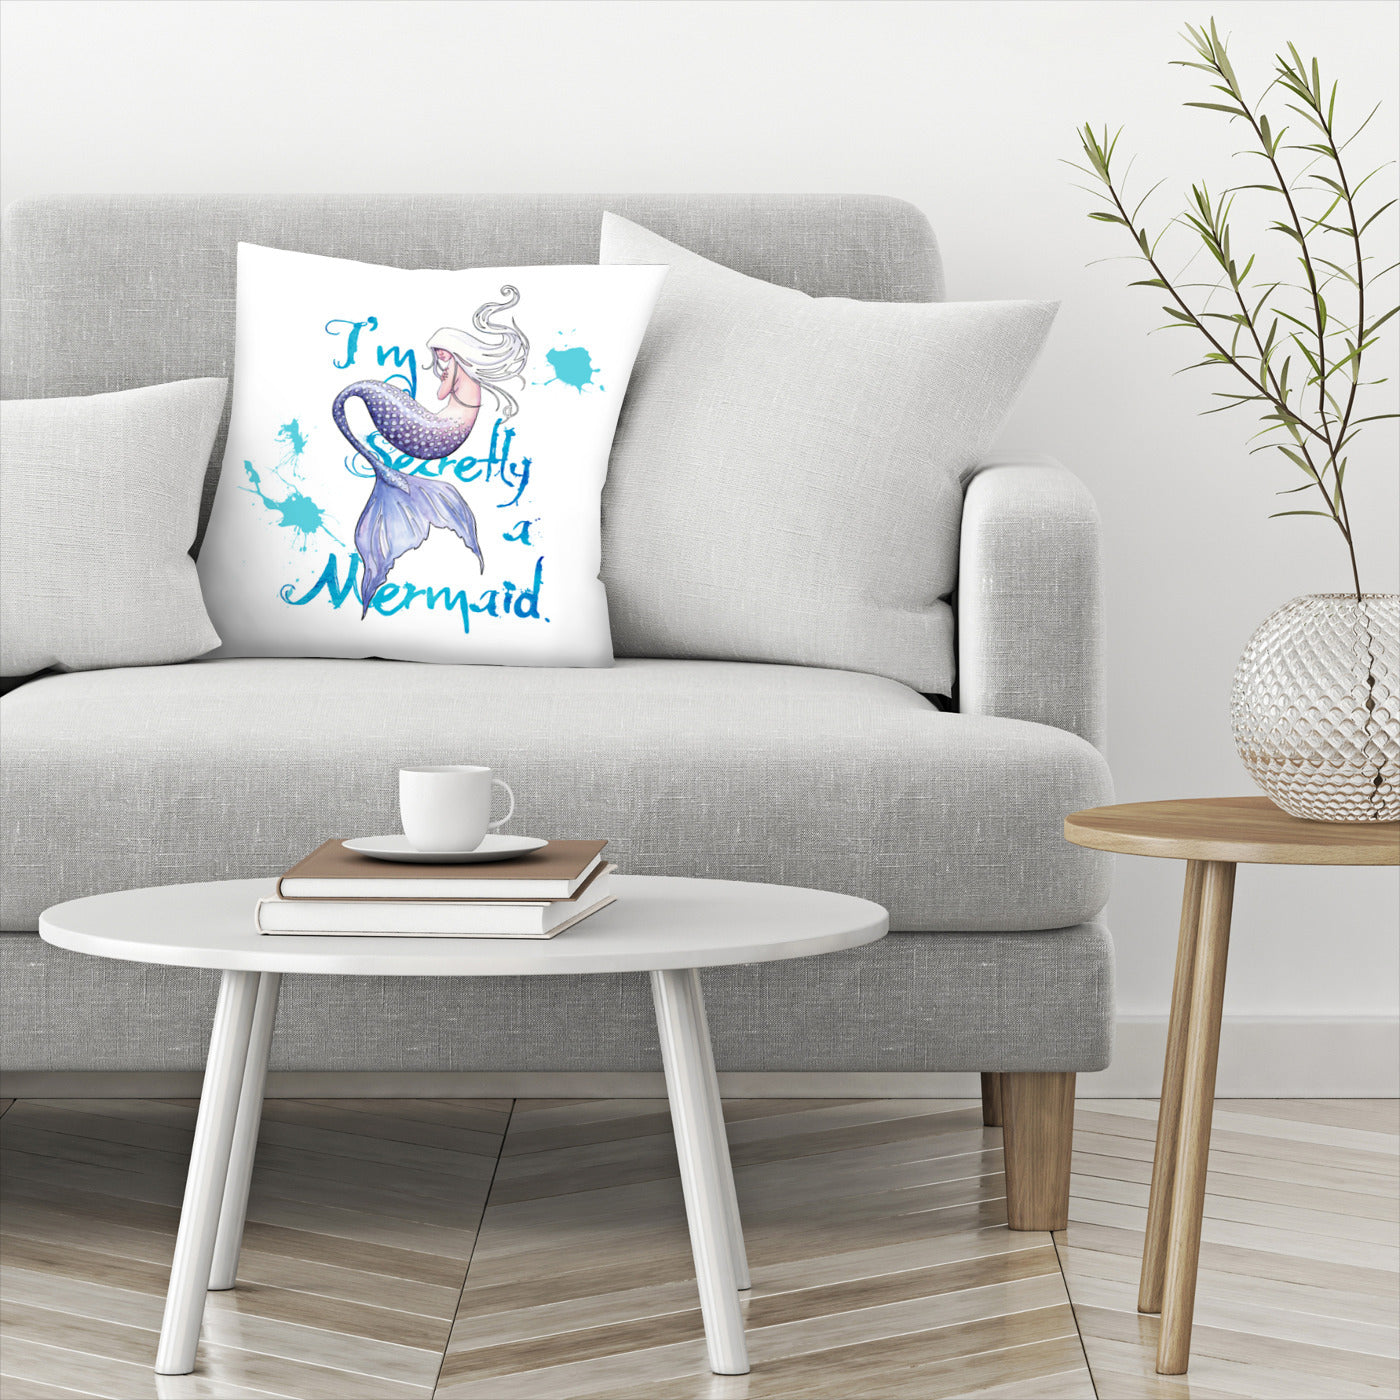 Secretly A Mermaid by Sam Nagel Decorative Pillow - Decorative Pillow - Americanflat